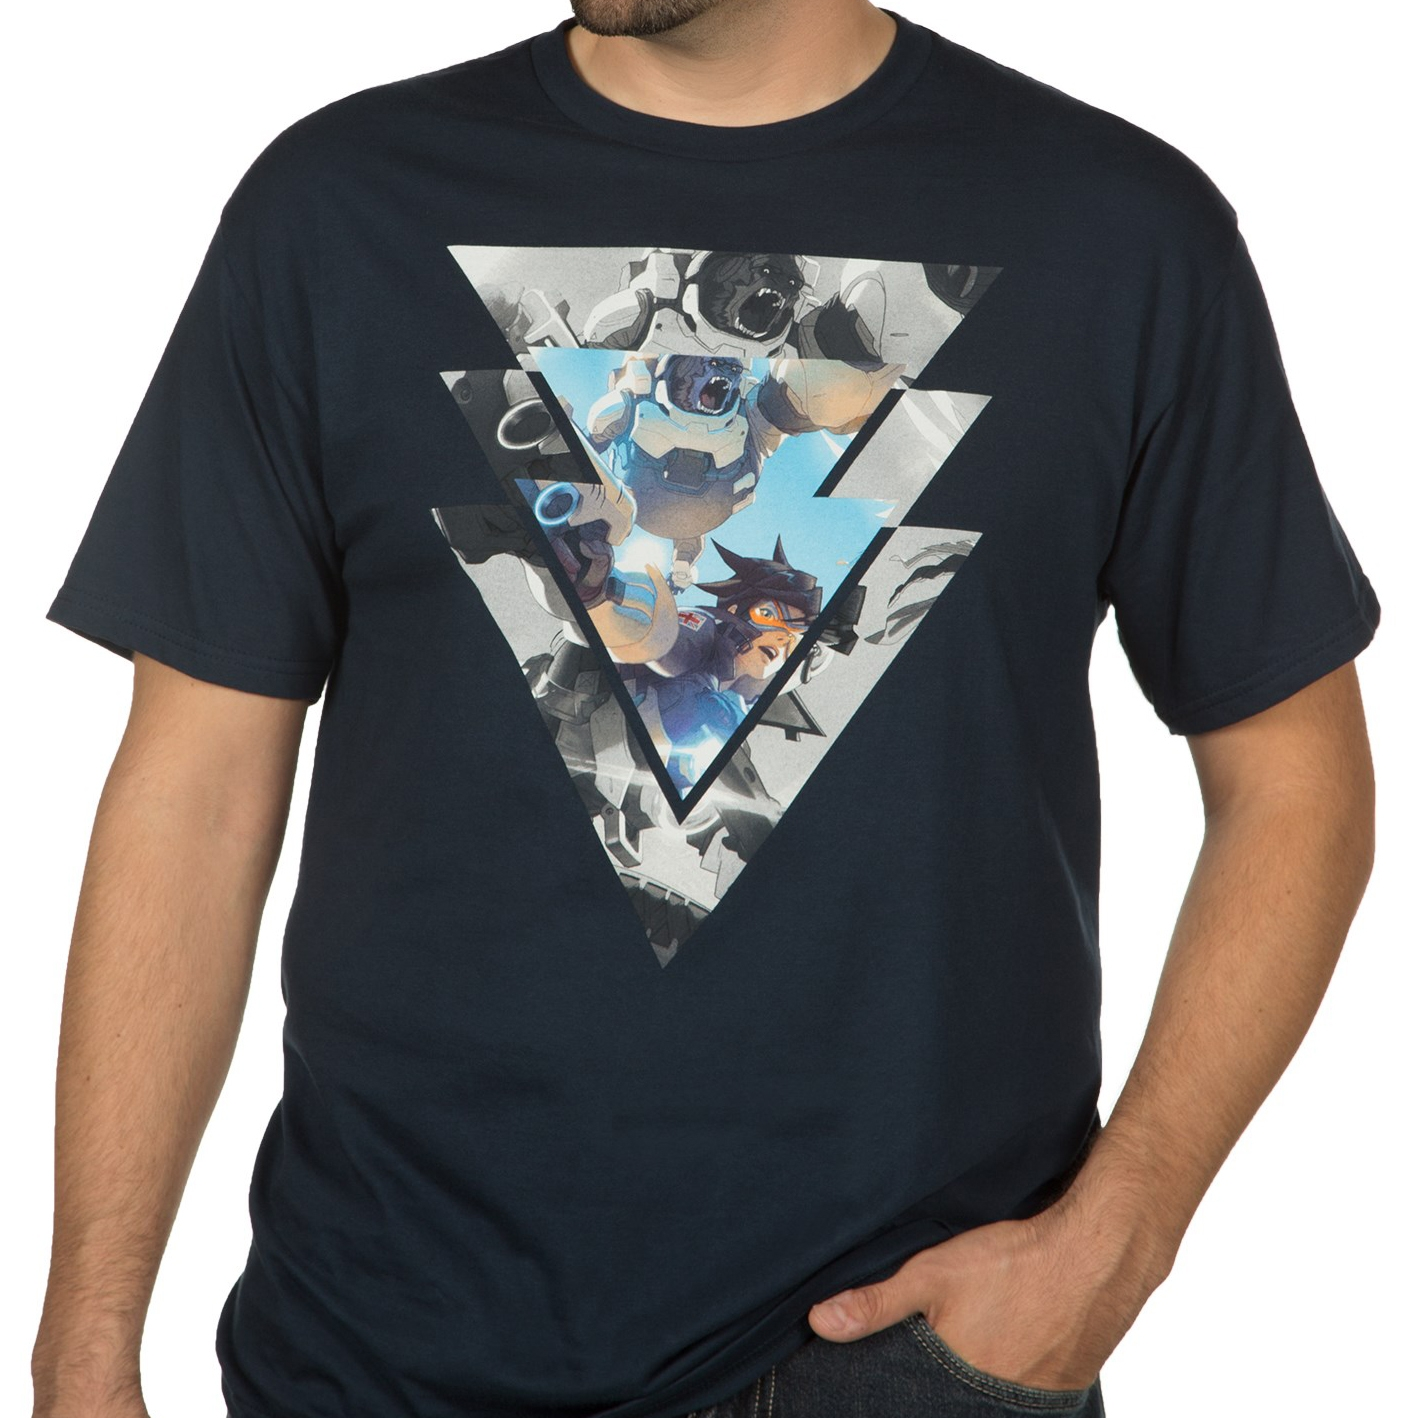 Photograph: Overwatch For The Good T-Shirt